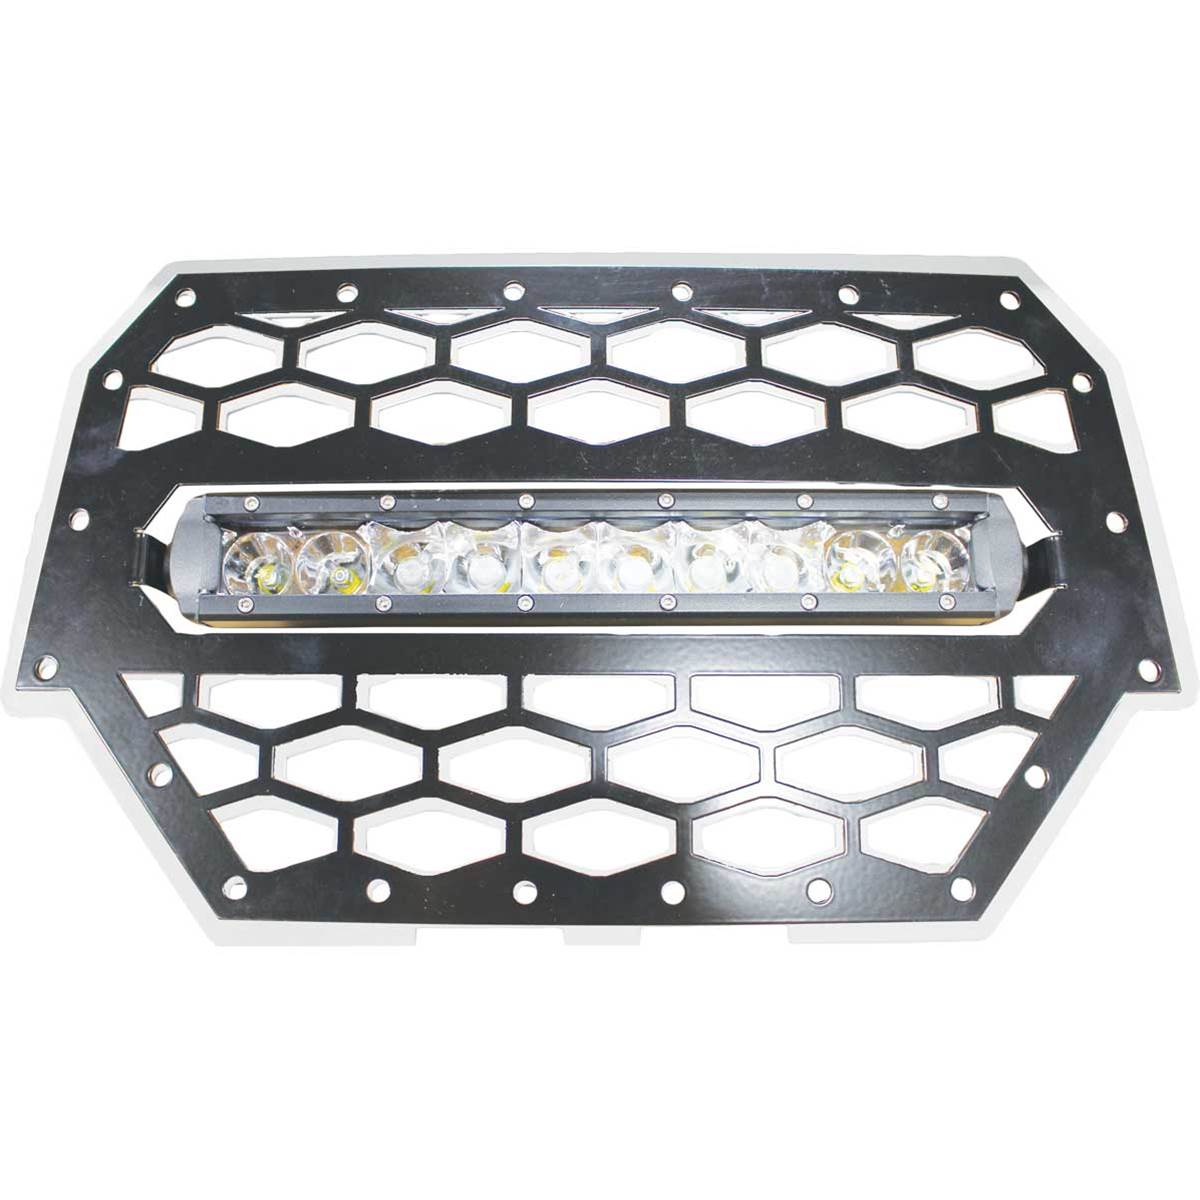 "Polaris RZR 900/1000 Silver Grille with LED 10"" Light Bar Kit"